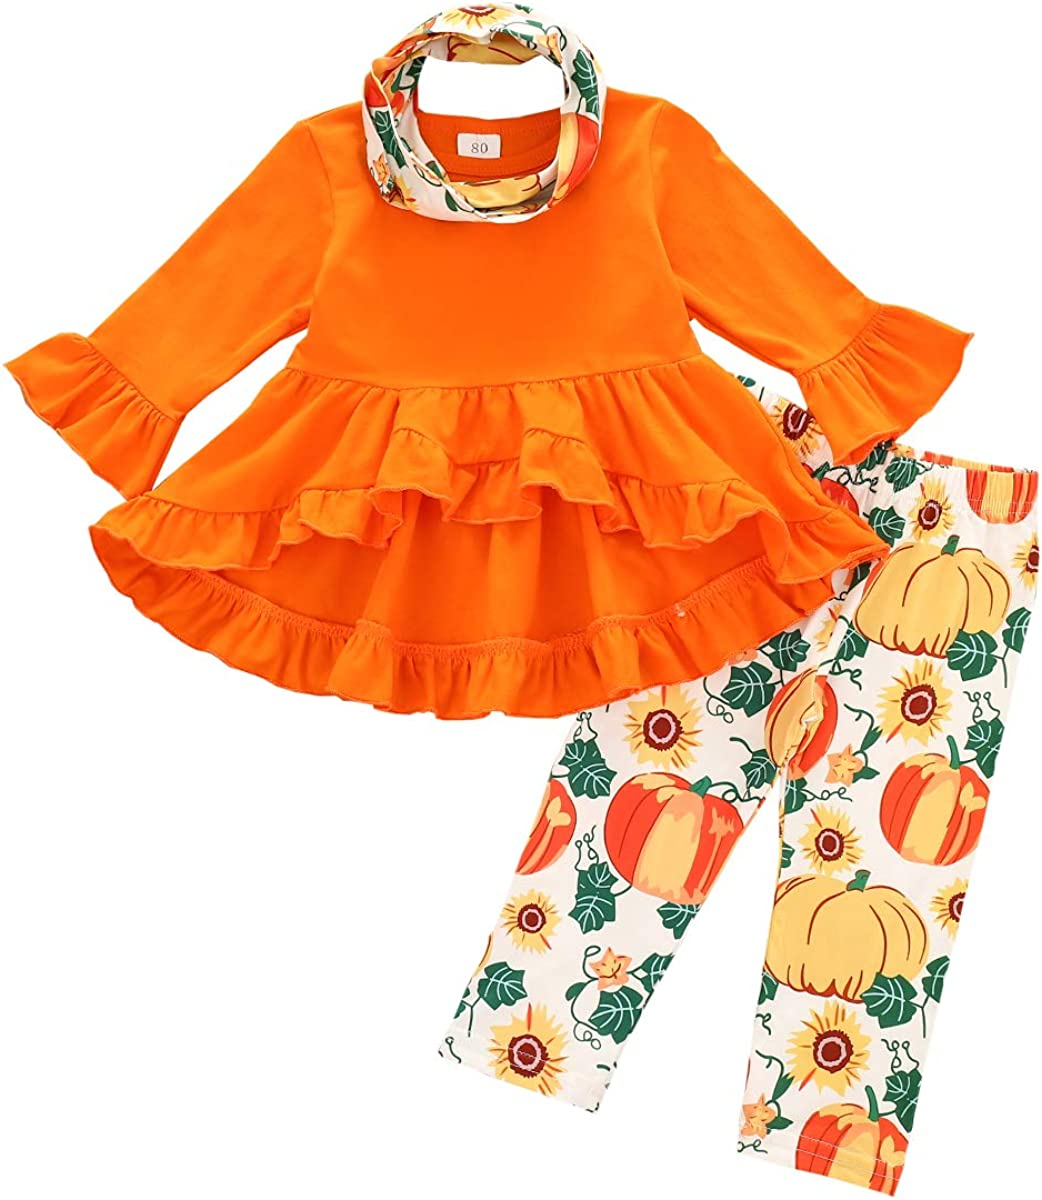 T TALENTBABY Toddler Halloween Outfit Claus Infant Ruffle Pumpkin T-Shirt Tops Flared Pants 2PCS Baby Playsuit Nightmare Bodysuit Romper